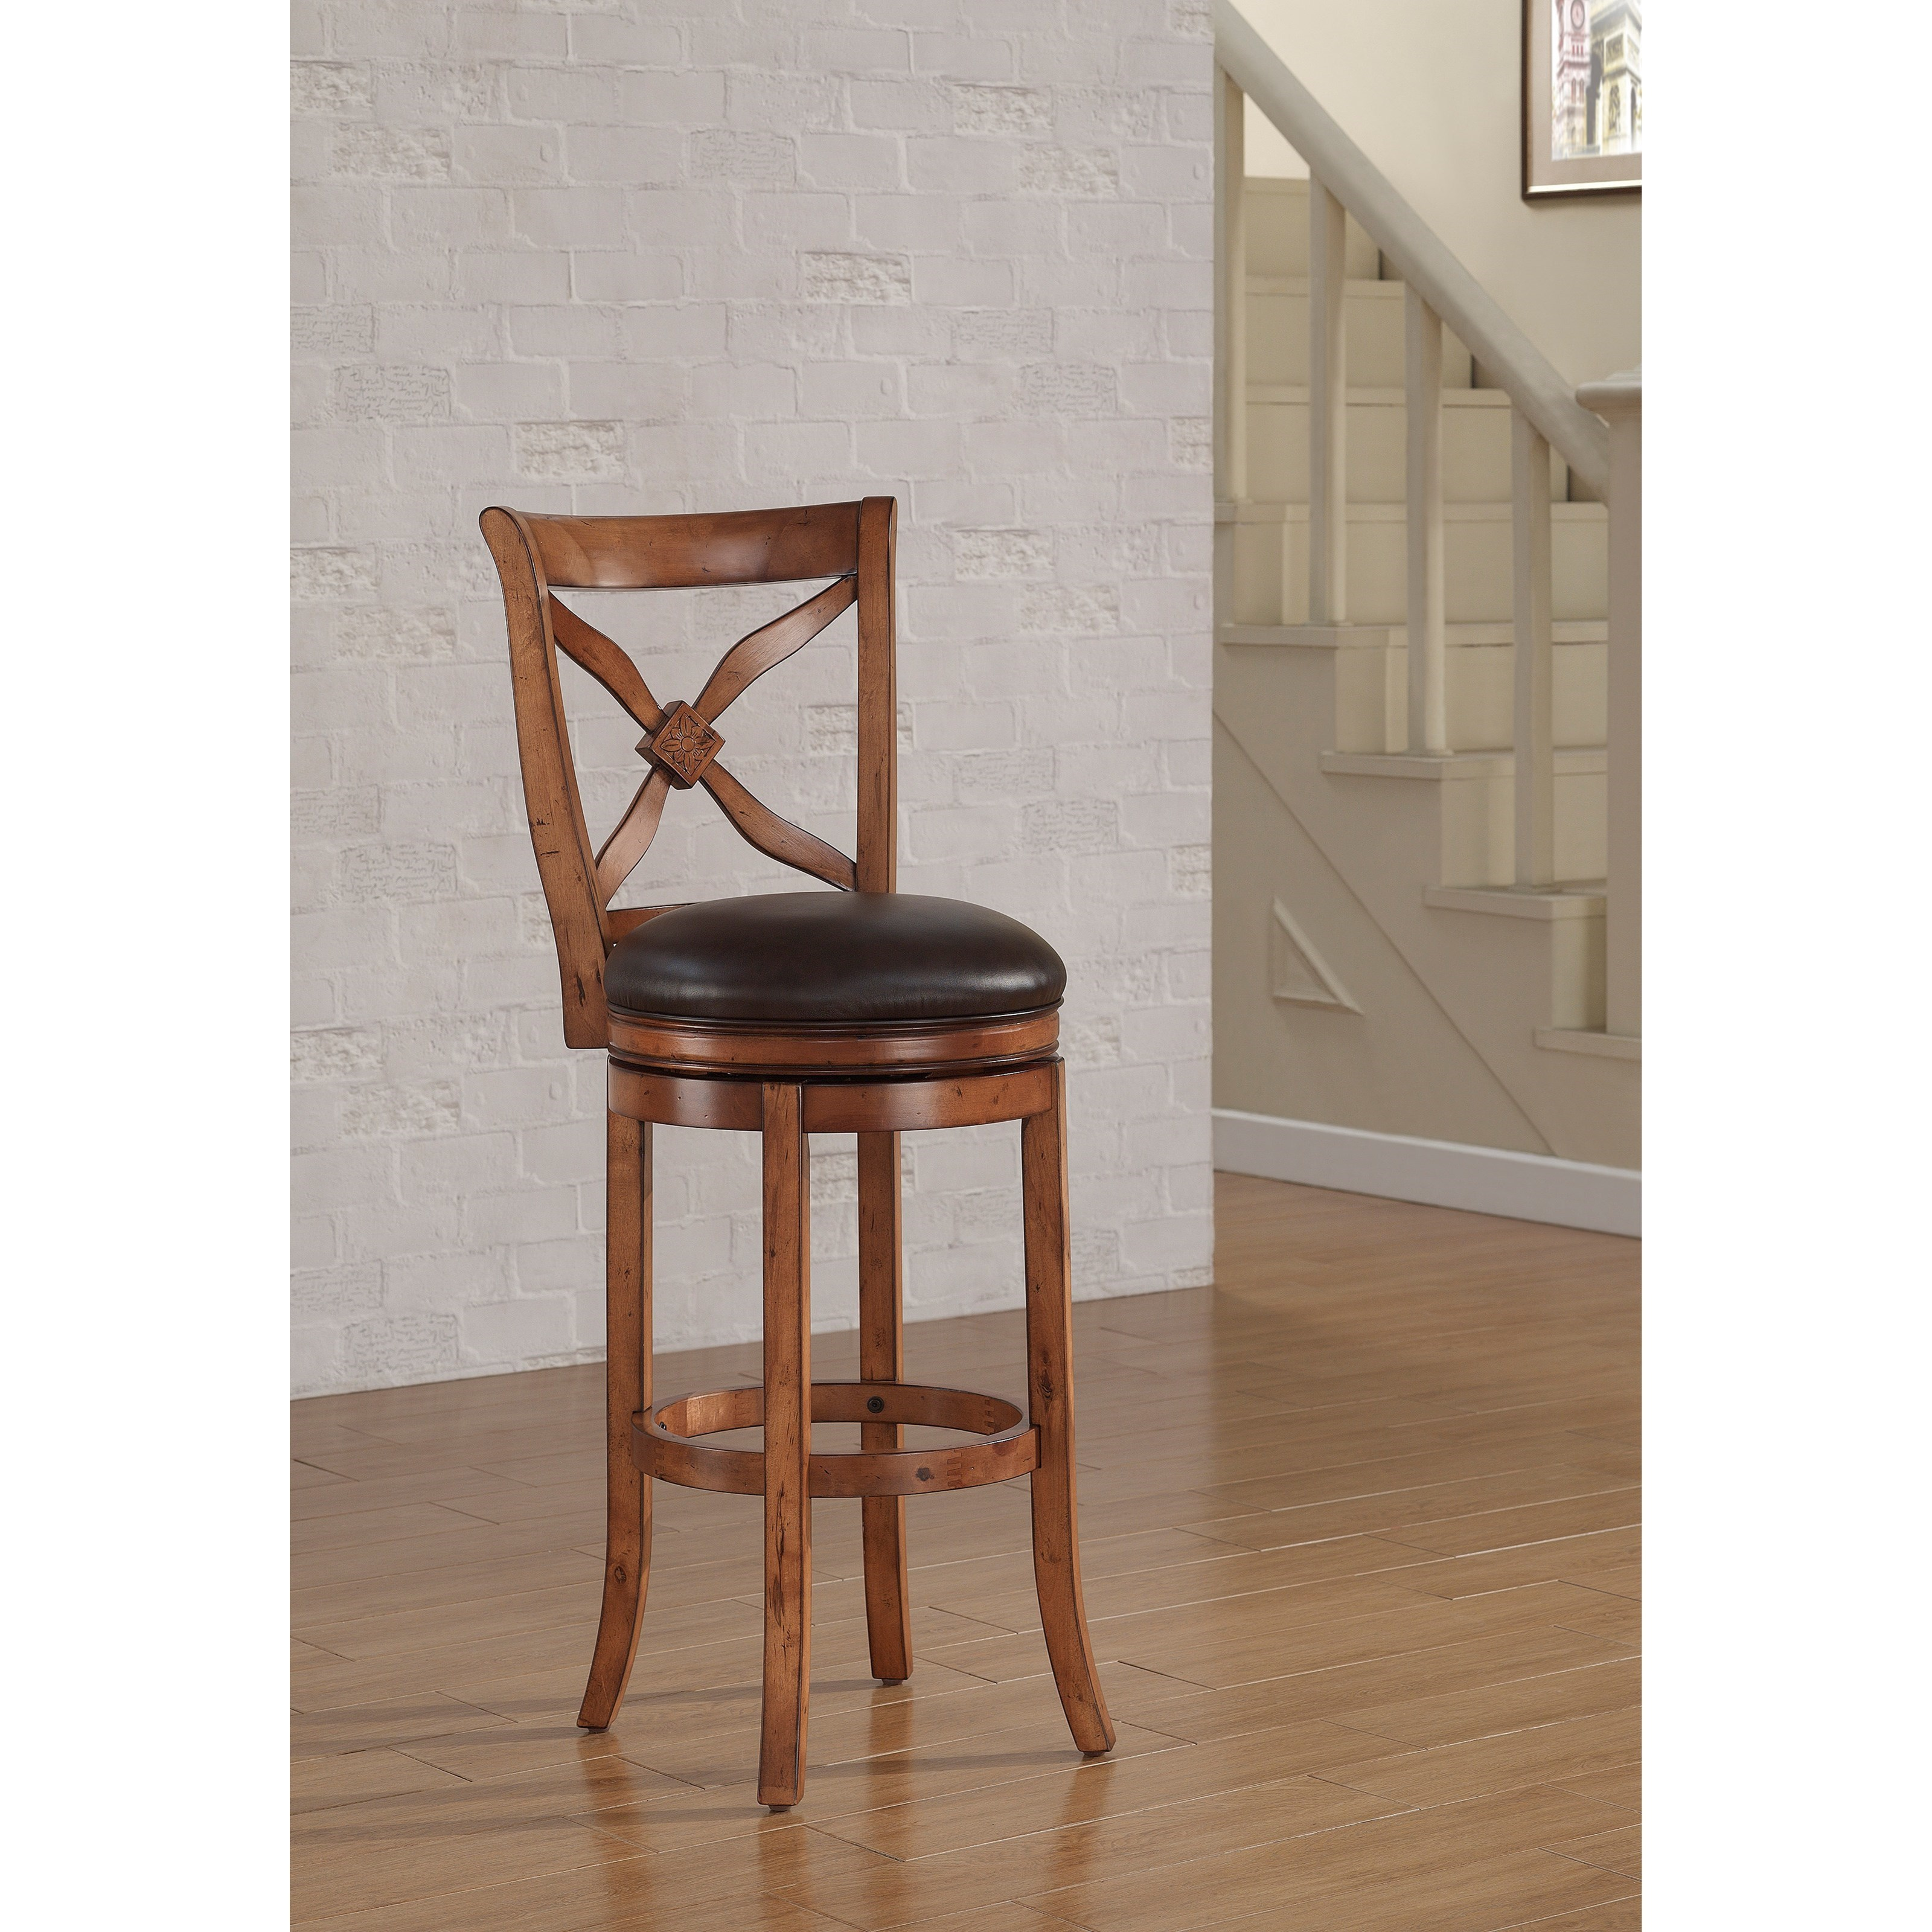 American Woodcrafters Barstools Wood Swivel Stool - Item Number: B2-201-30L